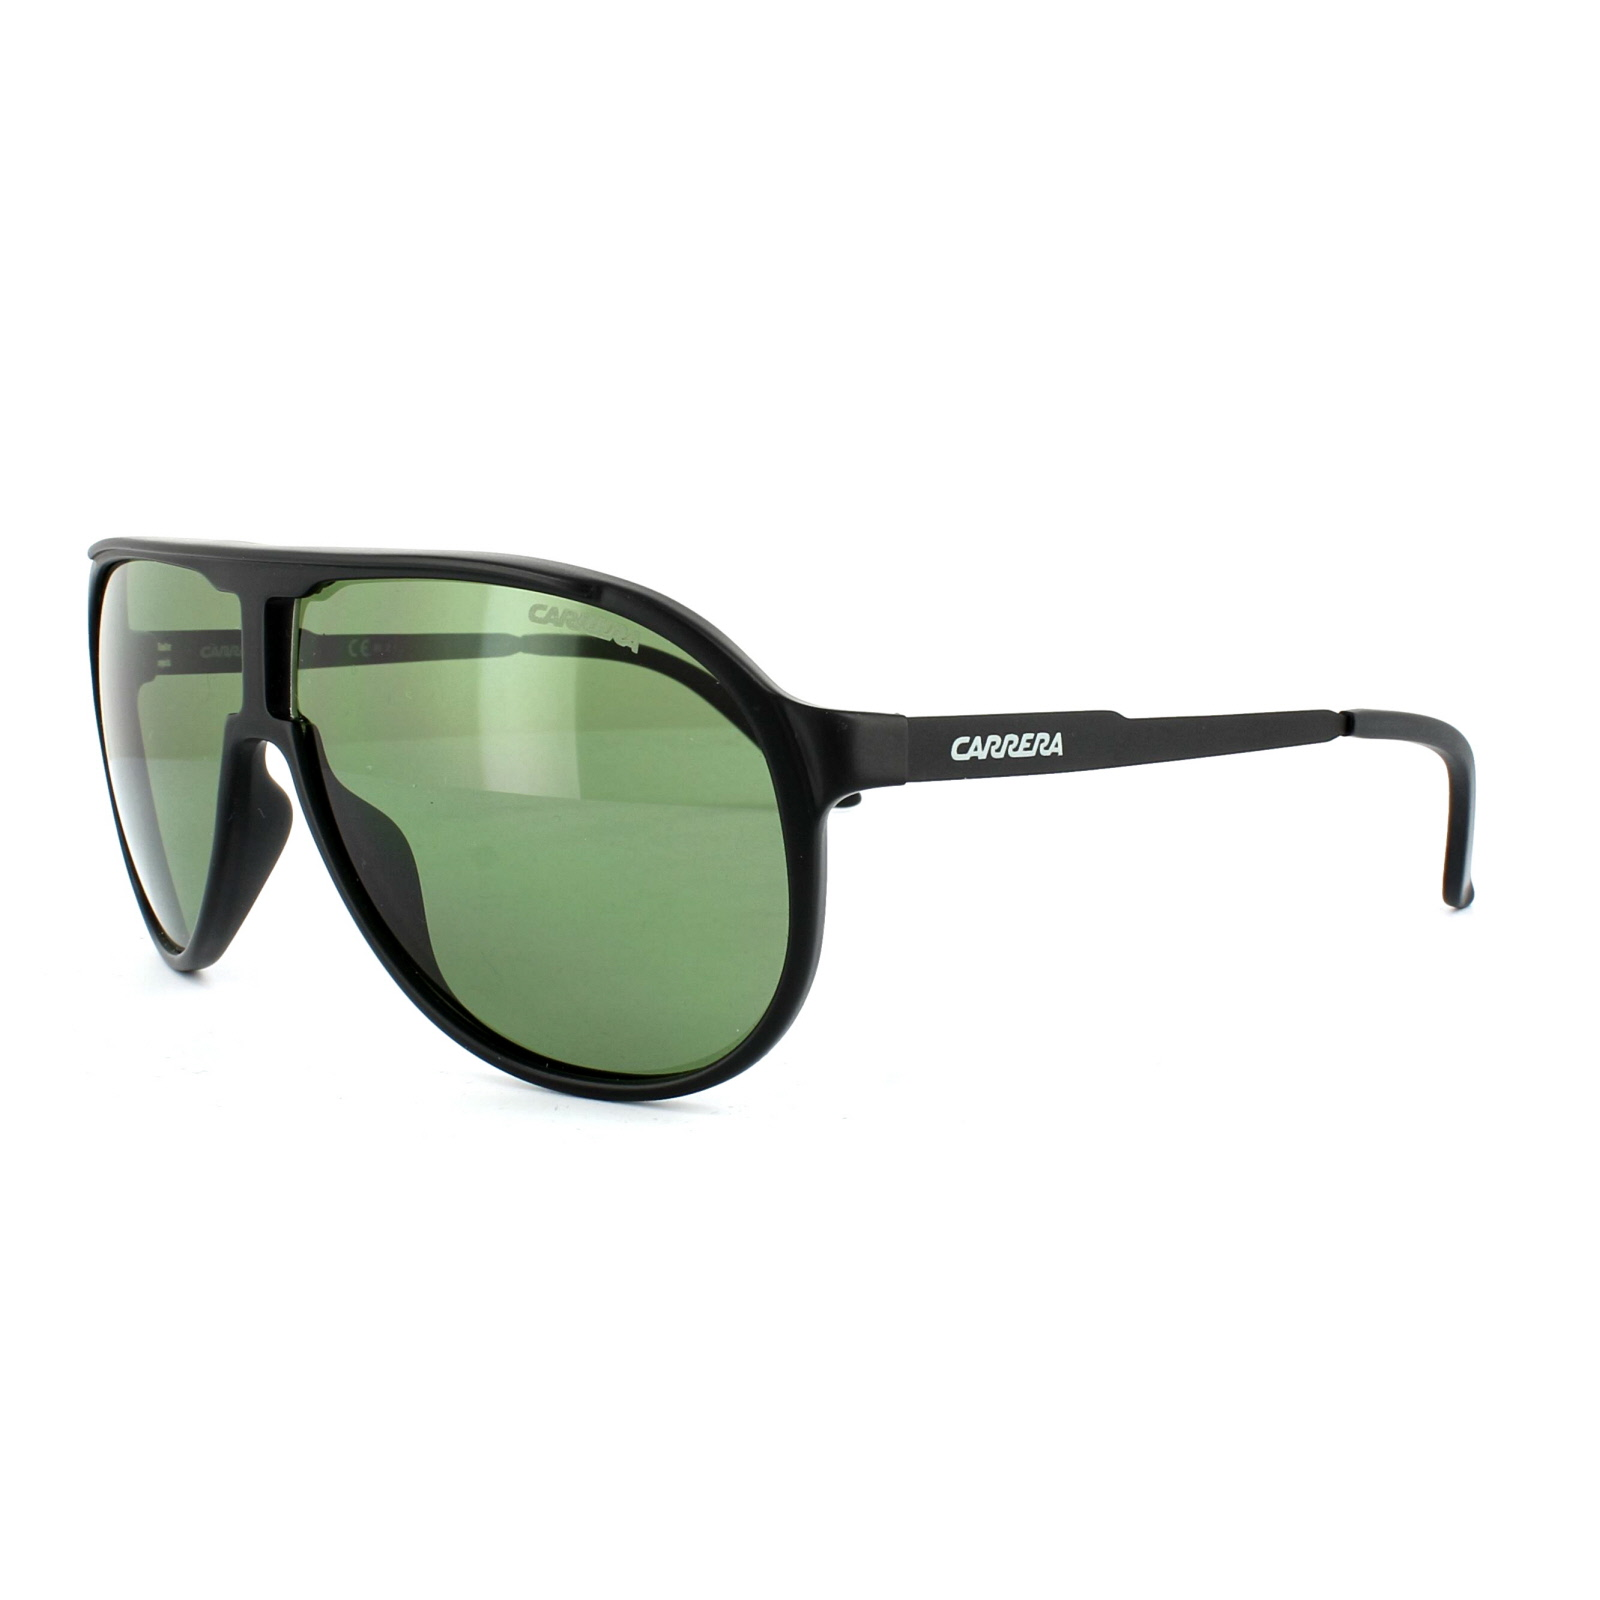 343b0a1fba8 Sentinel Carrera Sunglasses New Champion GUY DJ Matt Black Green 62mm